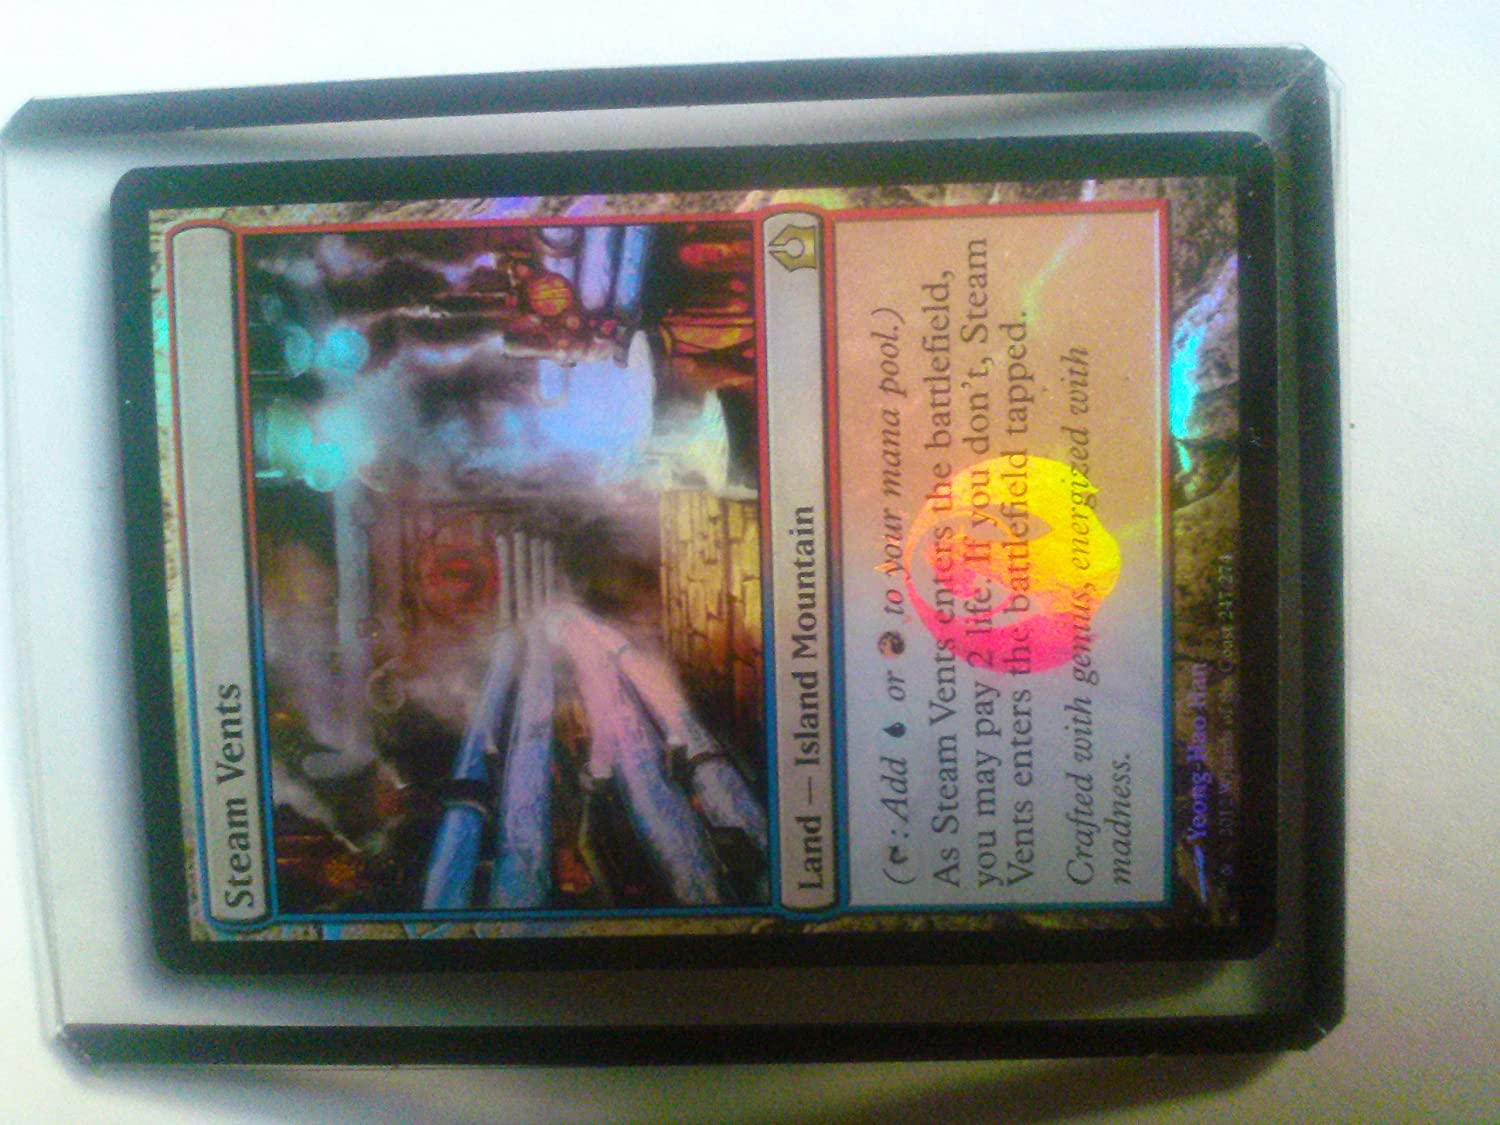 Magic: the Gathering - - - Steam Vents (247) - Return to Ravnica - Foil by Magic: the Gathering bcebb4